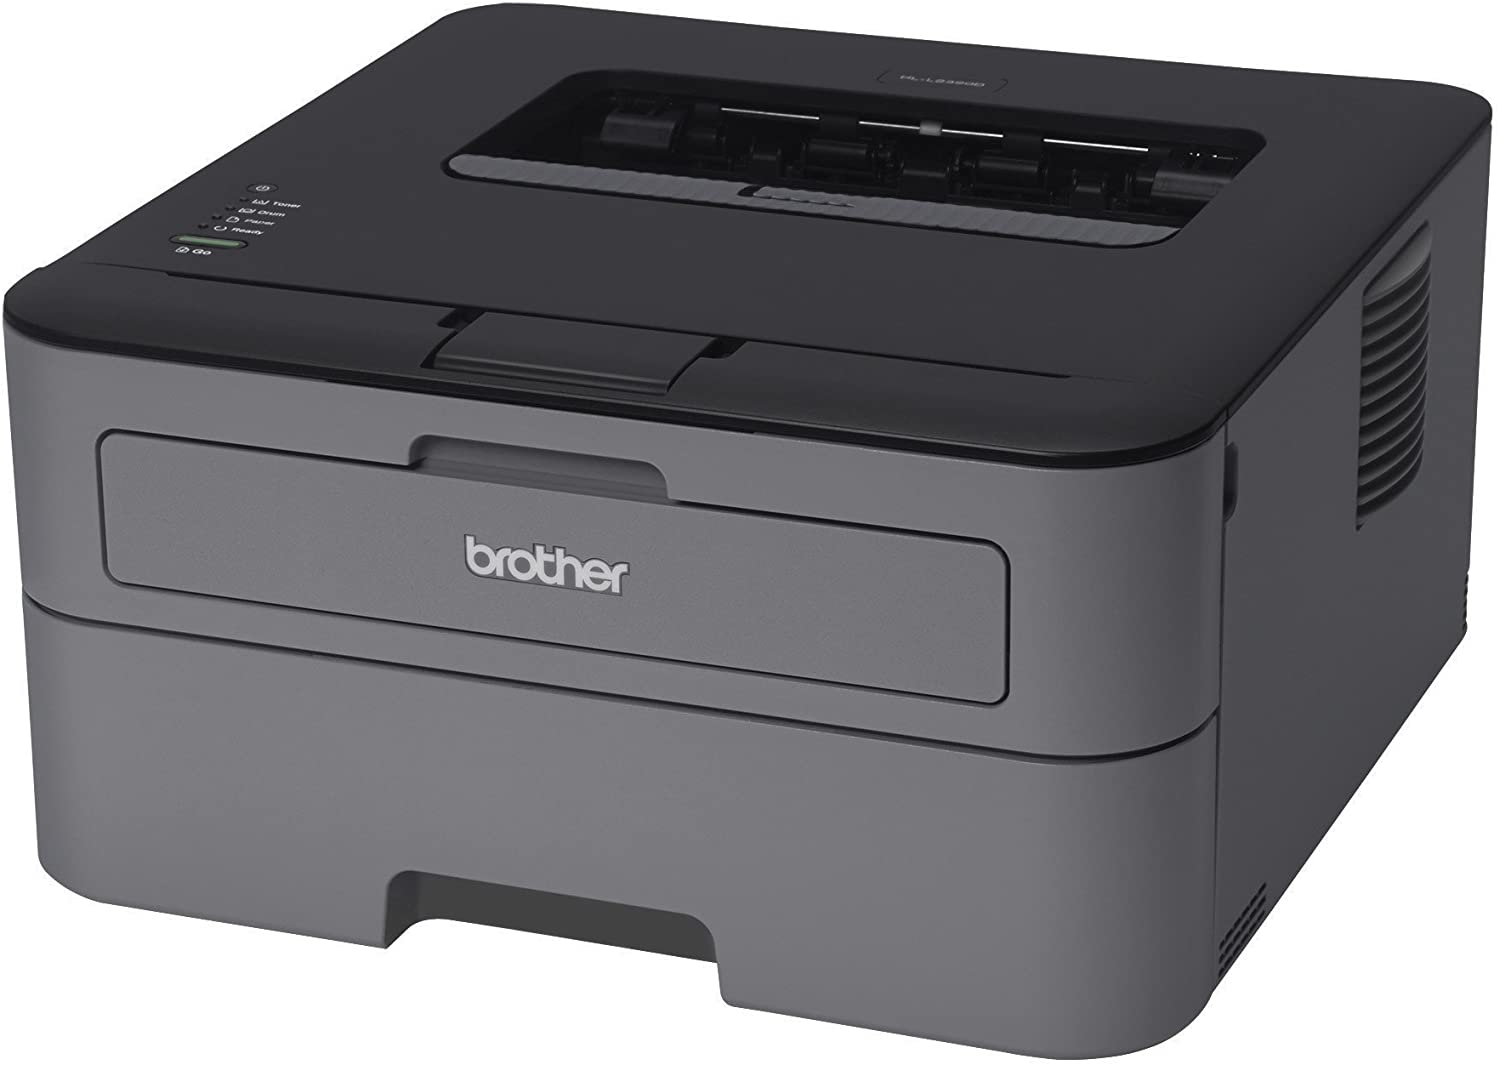 Amazon.com: Brother HL-L2300D Monochrome Laser Printer with ...